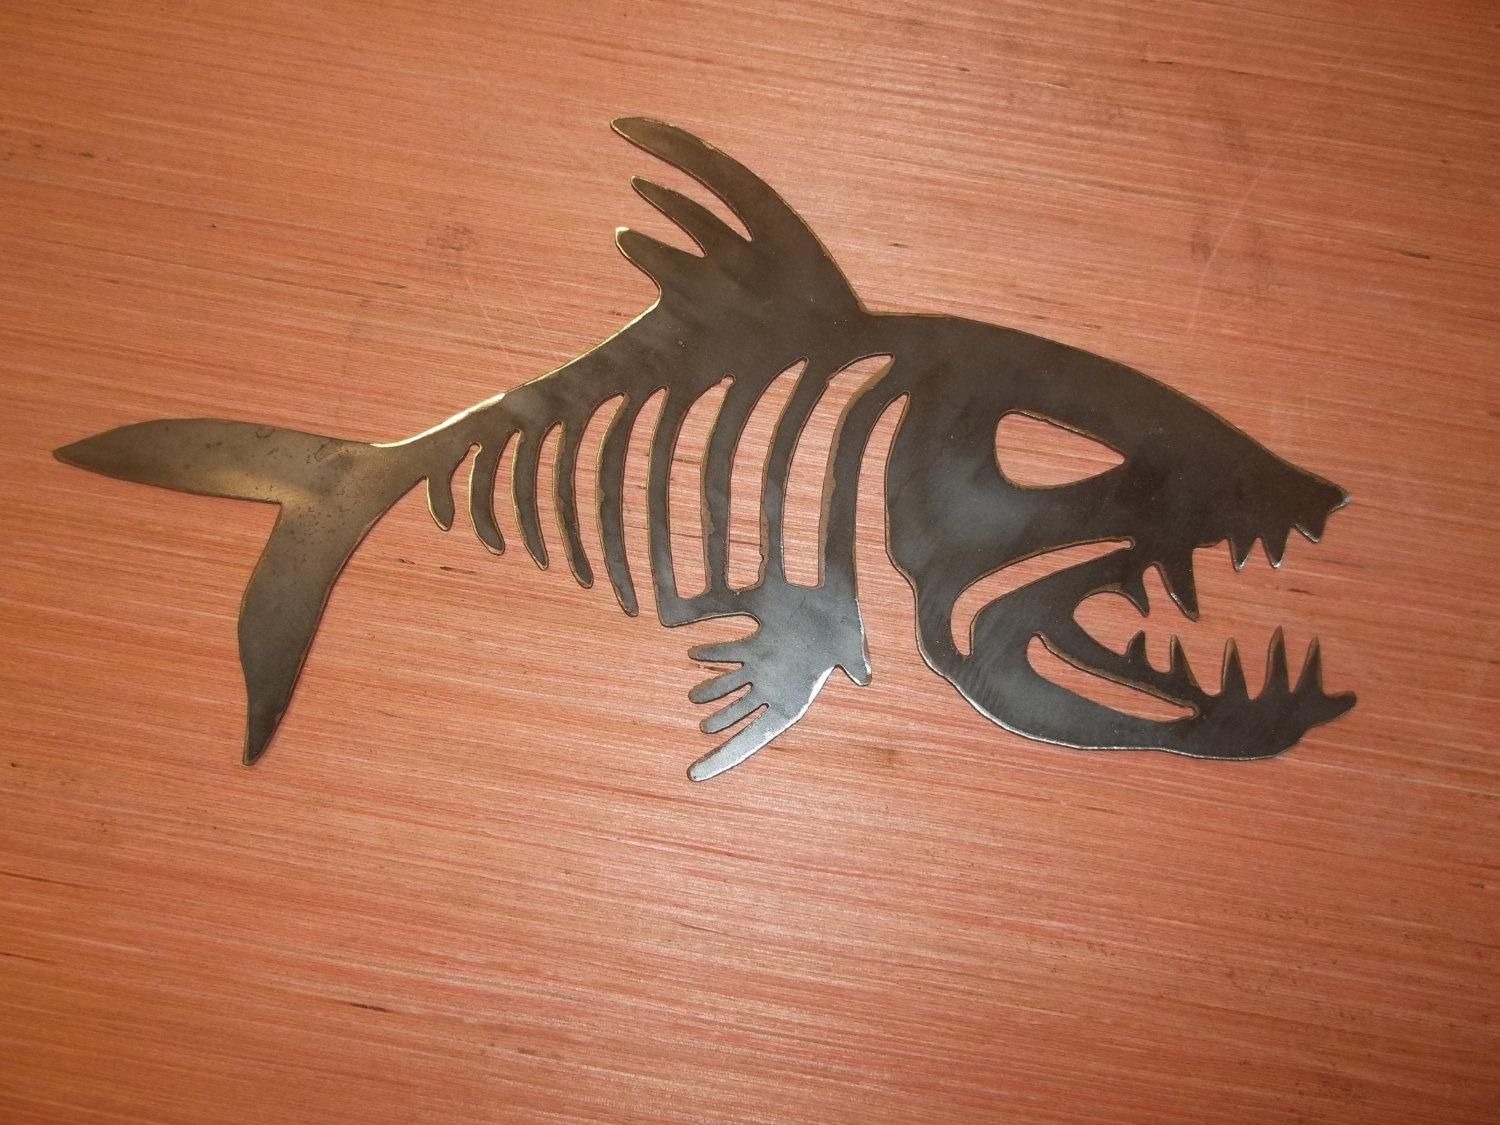 Fish Skeleton Dxf And Svg Files ~ Plasma Cutting Water Jet Laser Intended For Fish Bone Wall Art (Image 16 of 20)